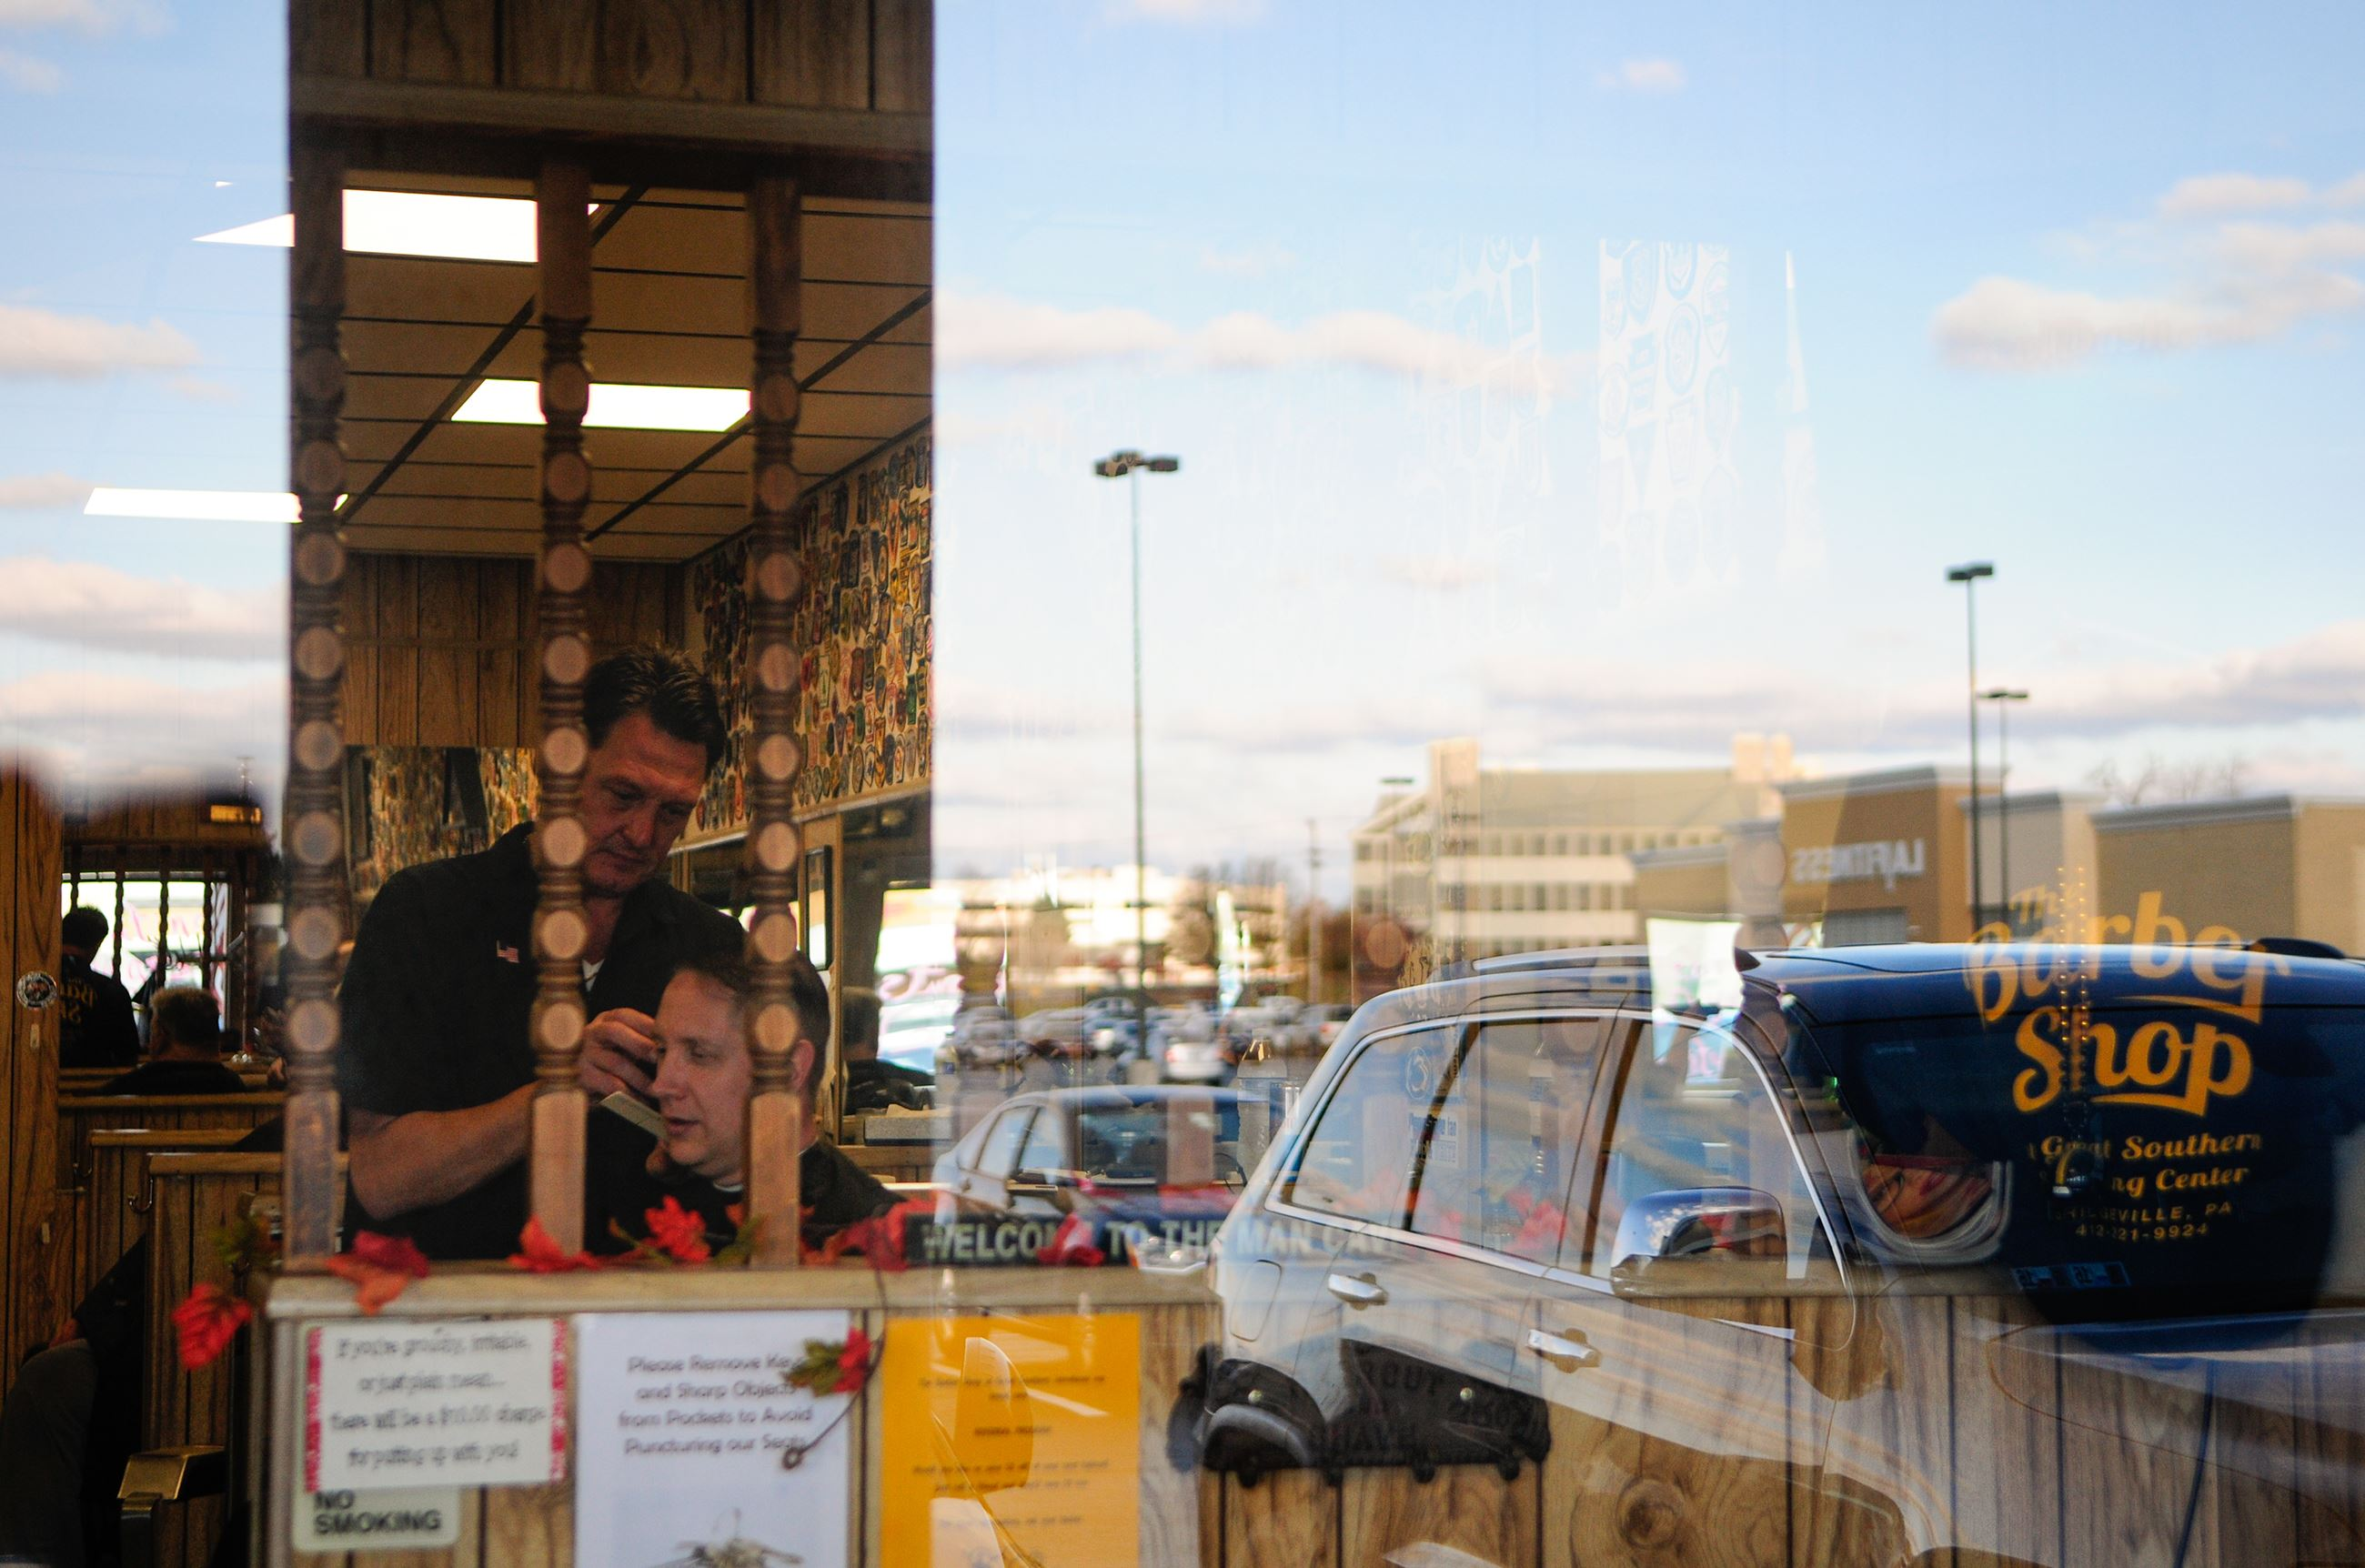 ... Shopping Plaza is mirrored off of J.R. Hoffmans barbershops window